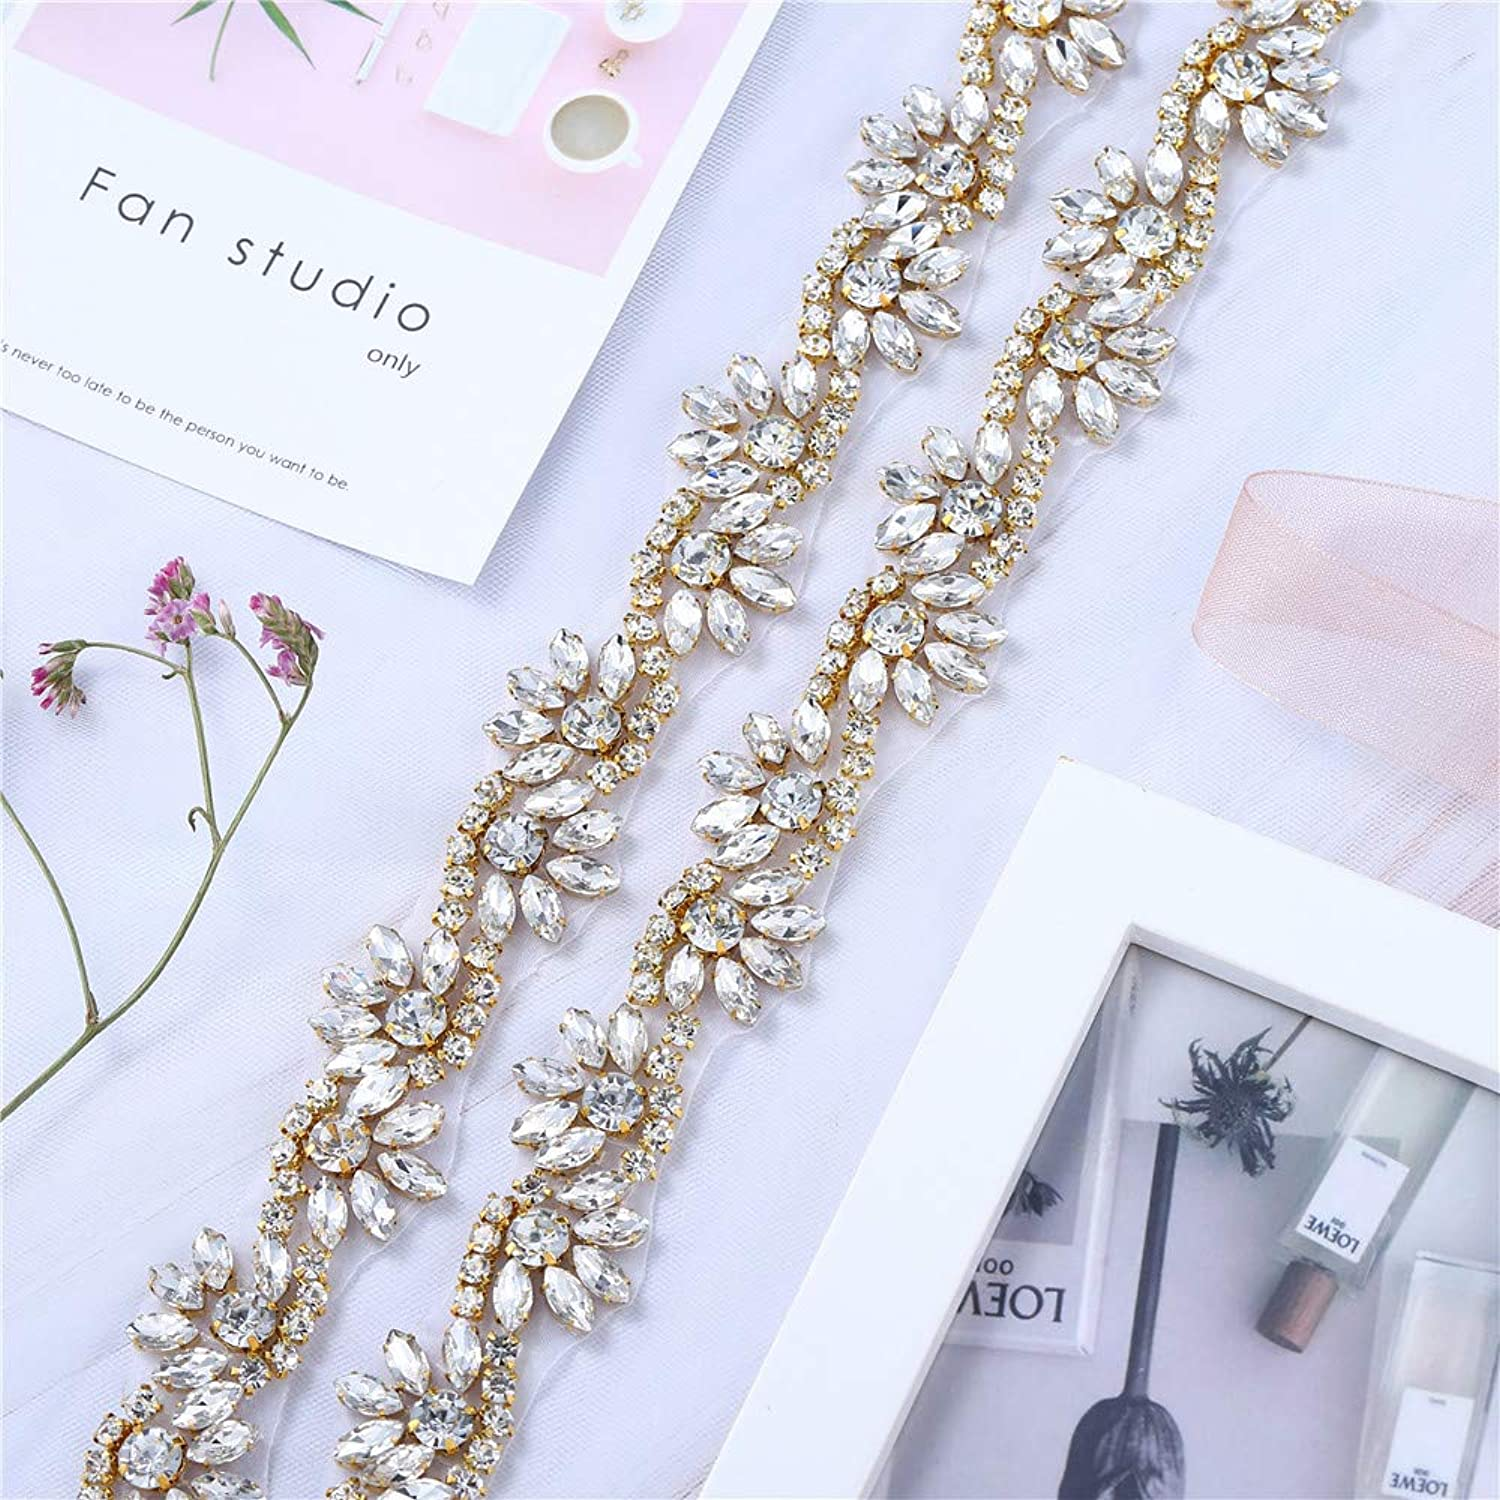 1 Yard Rhinestone Diamante Belt Applique Sew Iron on Crystal Bridal Wedding Dress Sash Beaded Jeweled Patch for Bride Bridesmaid Gown Women Prom Formal Belt Clothes Embellishments (goldFloral)